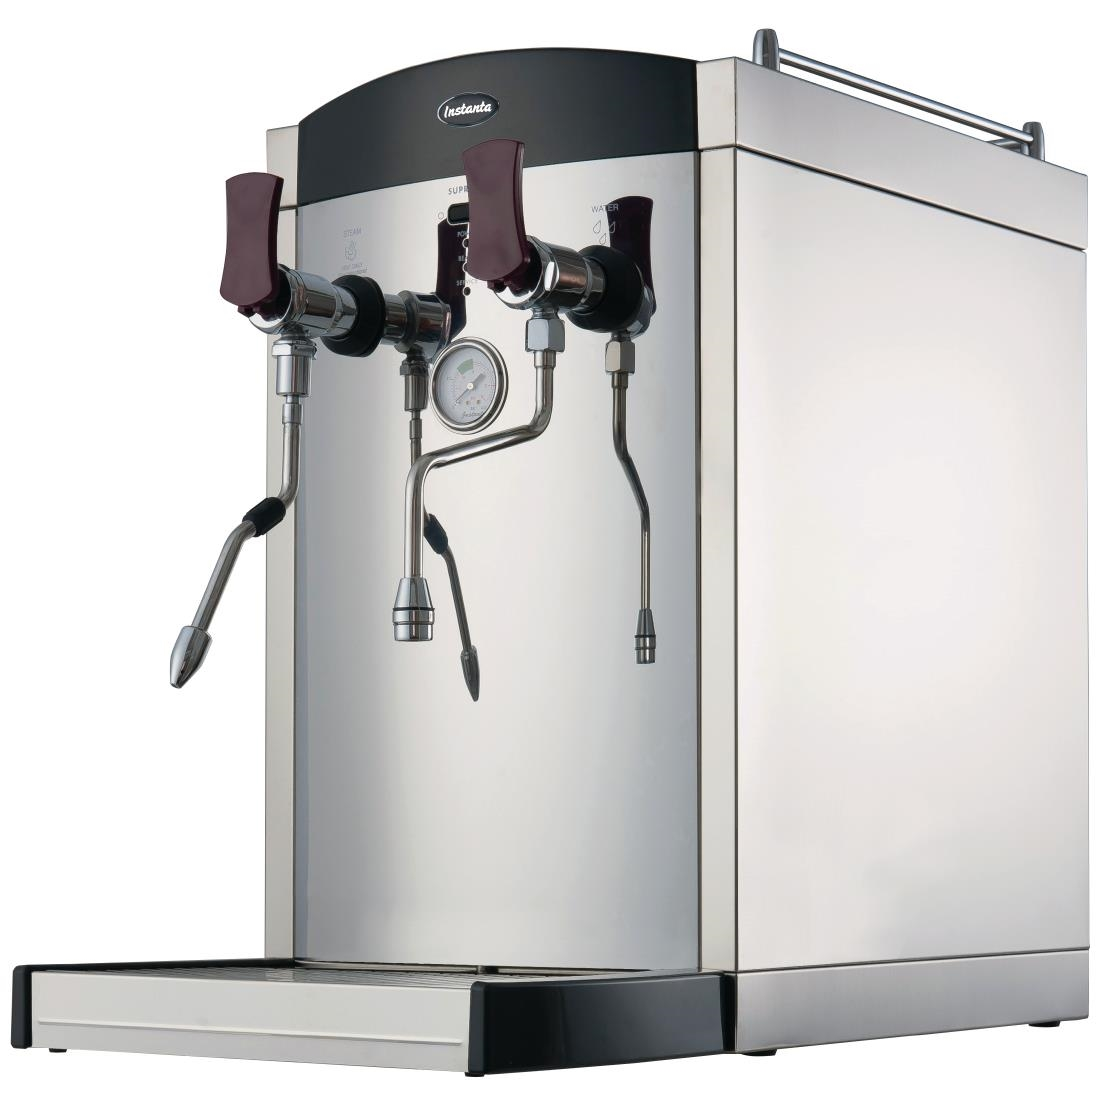 Image of Instanta Autofill Countertop 13Ltr Steam and Water Boiler WB2